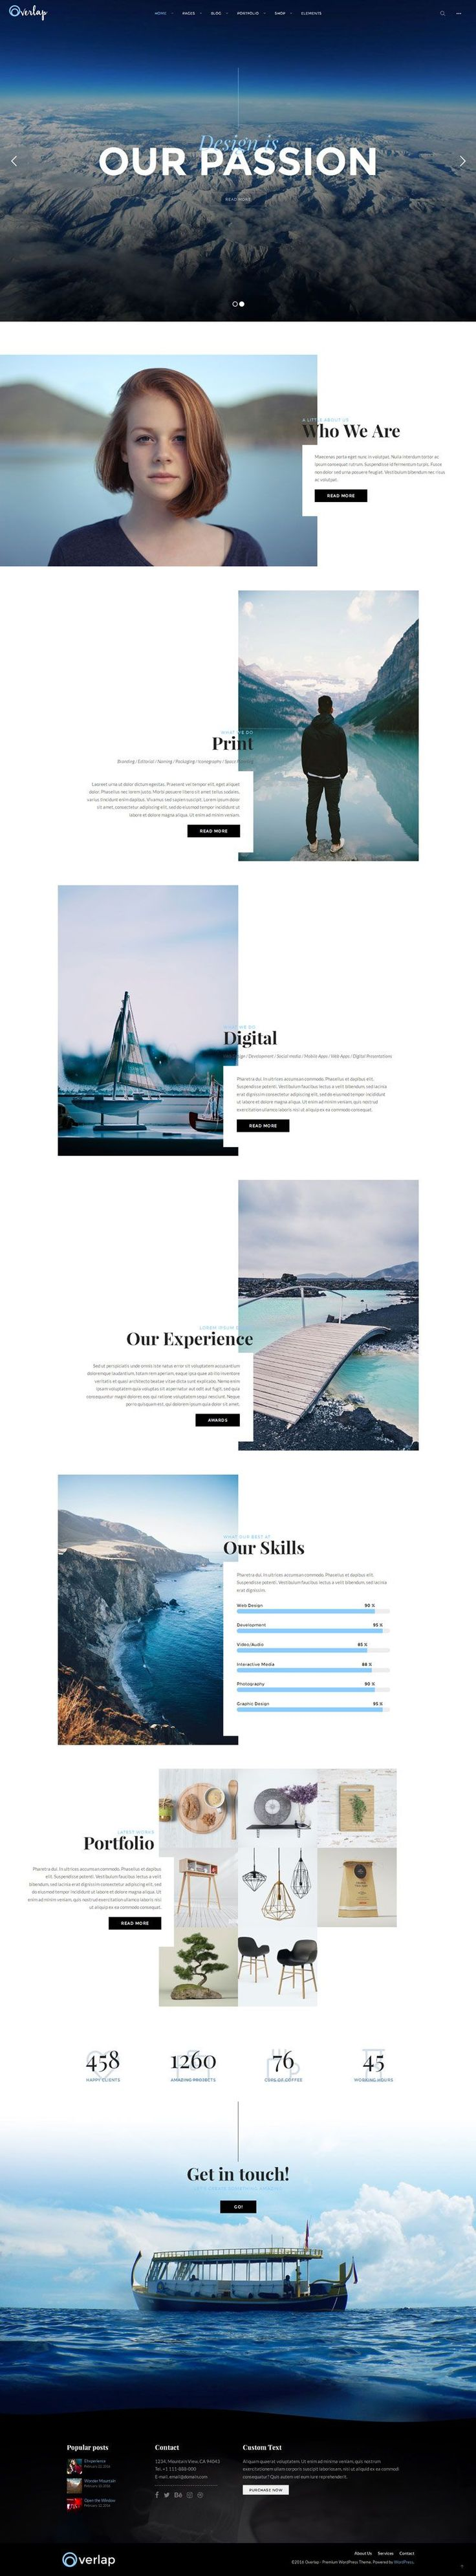 Website Design Ideas stdioh salon web design by utkarsh raut Creative But Newest Website Designs For Inspiration